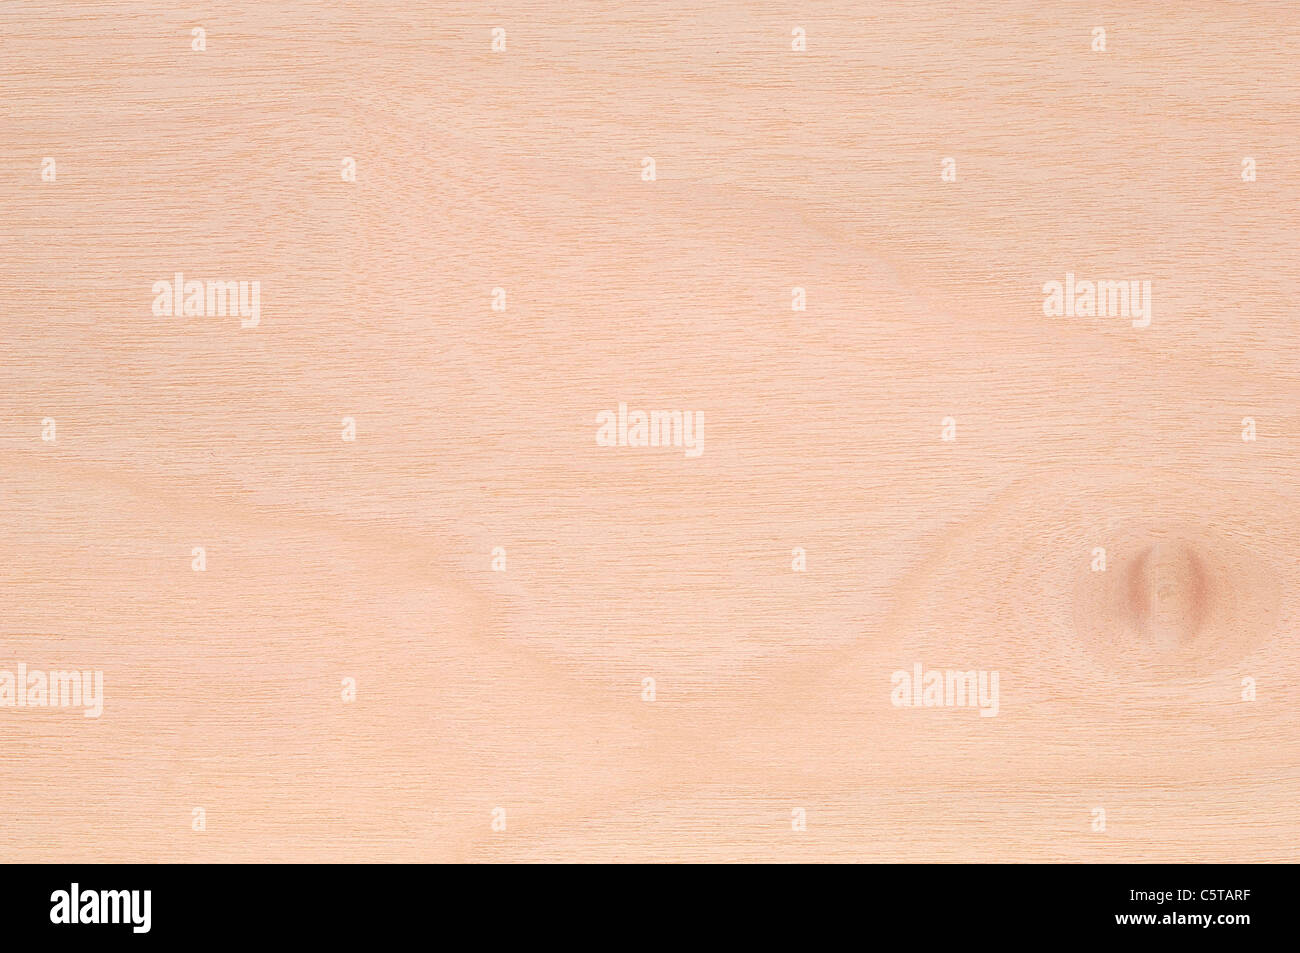 Wood surface, Birch Wood (Betula spp.) full frame - Stock Image